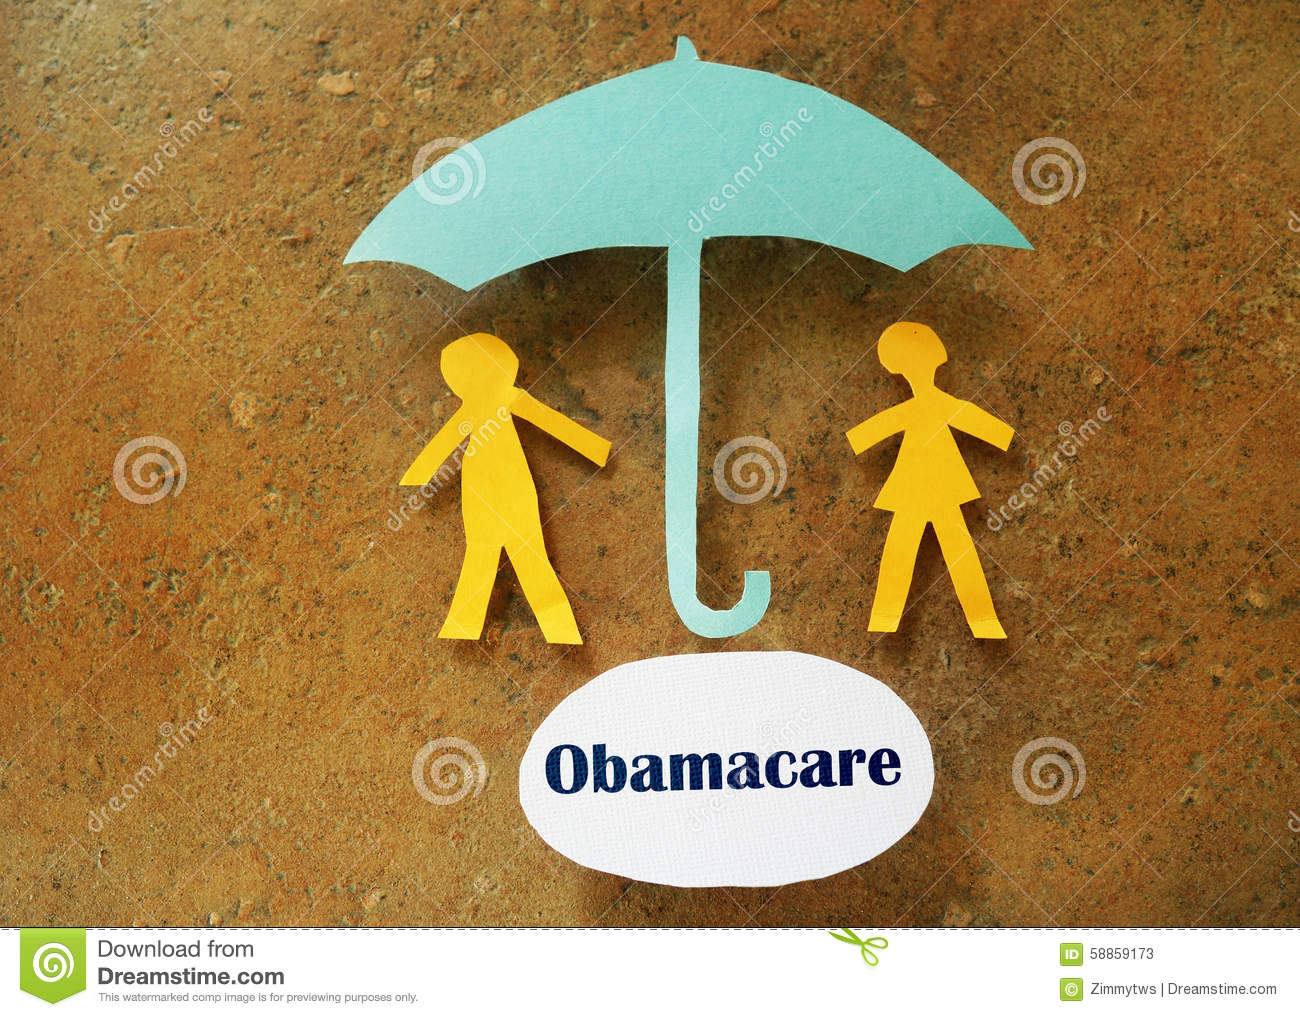 thesis on obamacare What is a good topic for a thesis relating to healthcare (eg quality management, drg, organisation, processes, communication, etc.